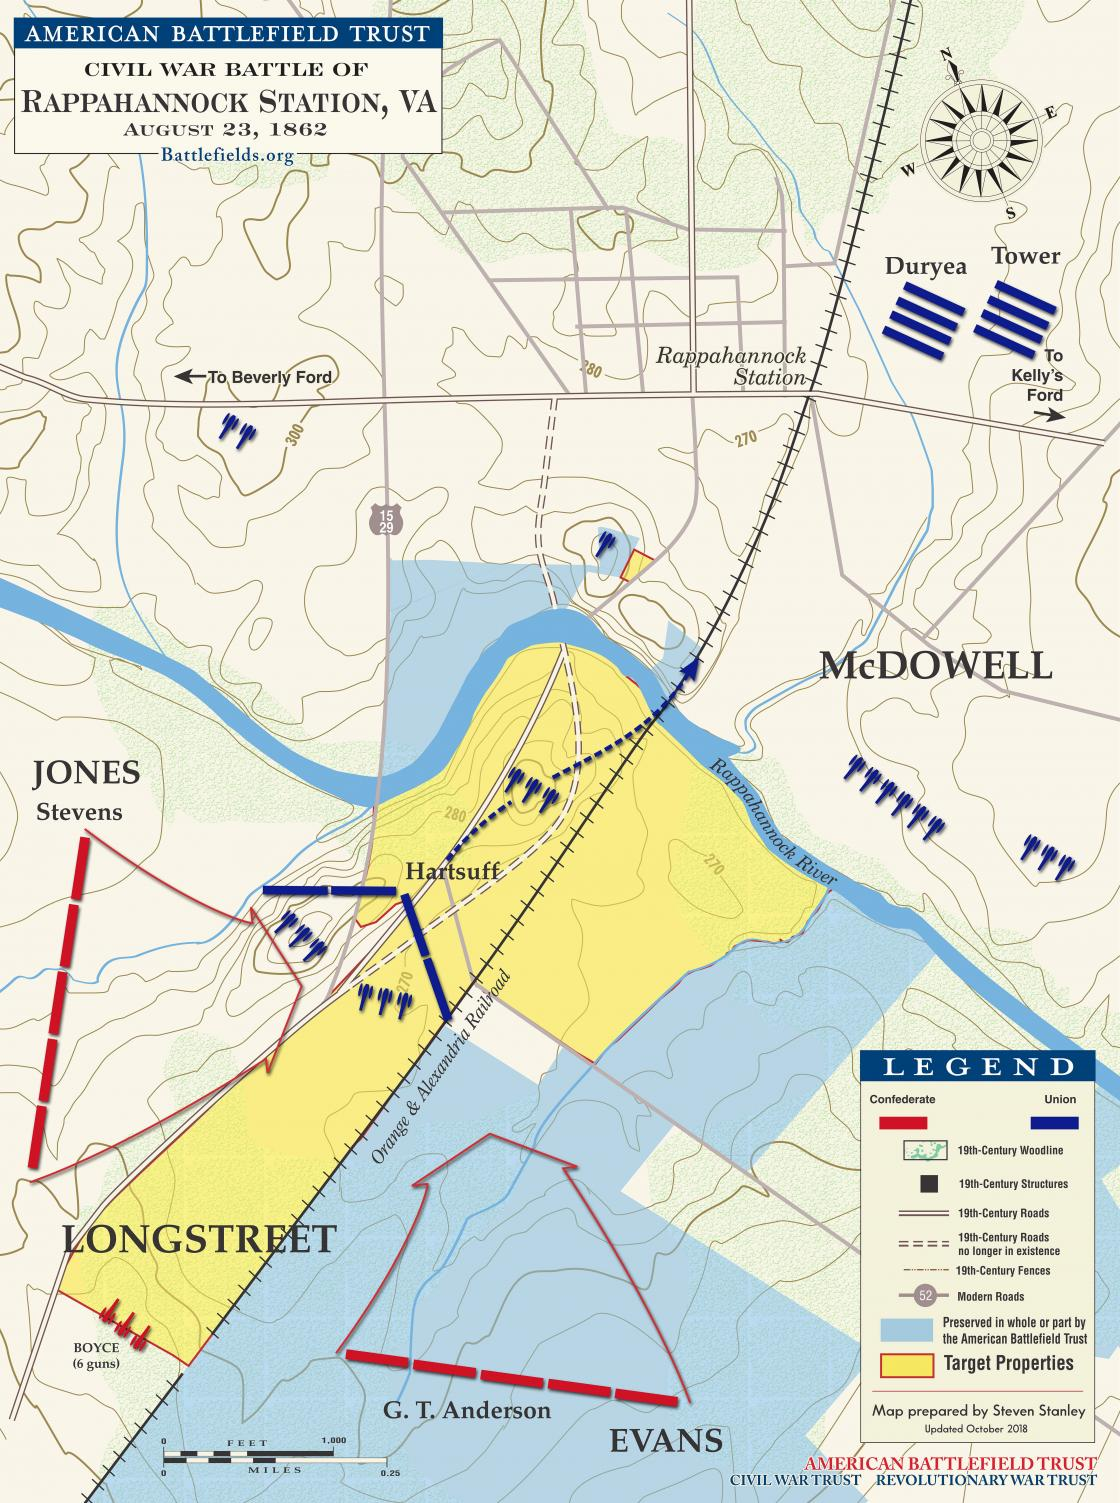 Battle of Rappahannock Station - August 22-25, 1862